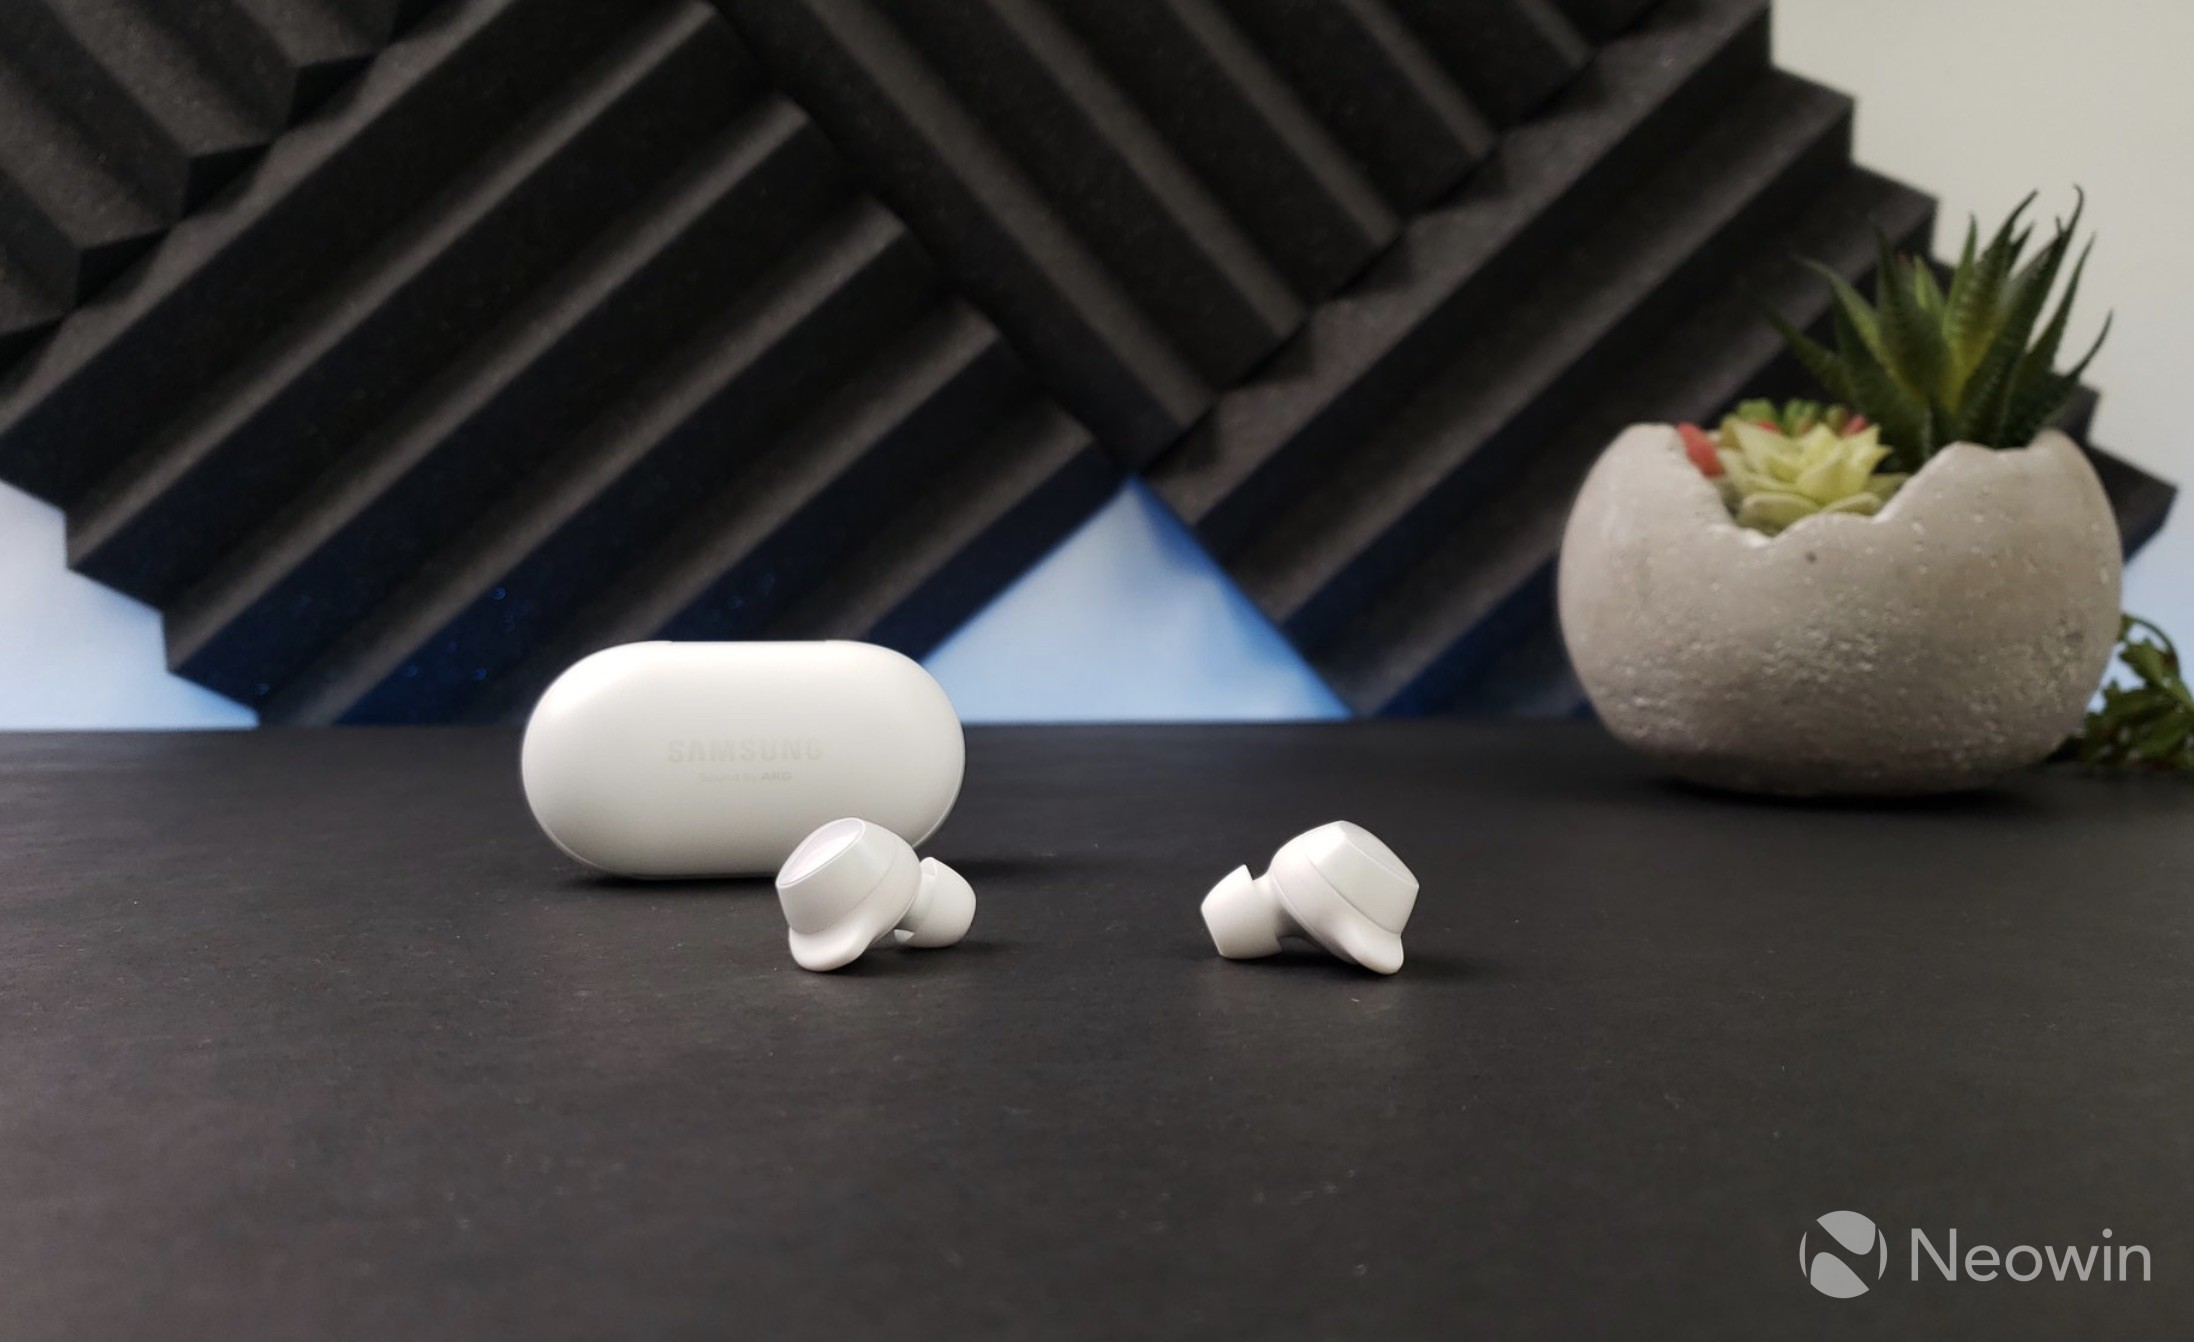 Samsung Galaxy Buds: Unboxing and first impressions - Neowin